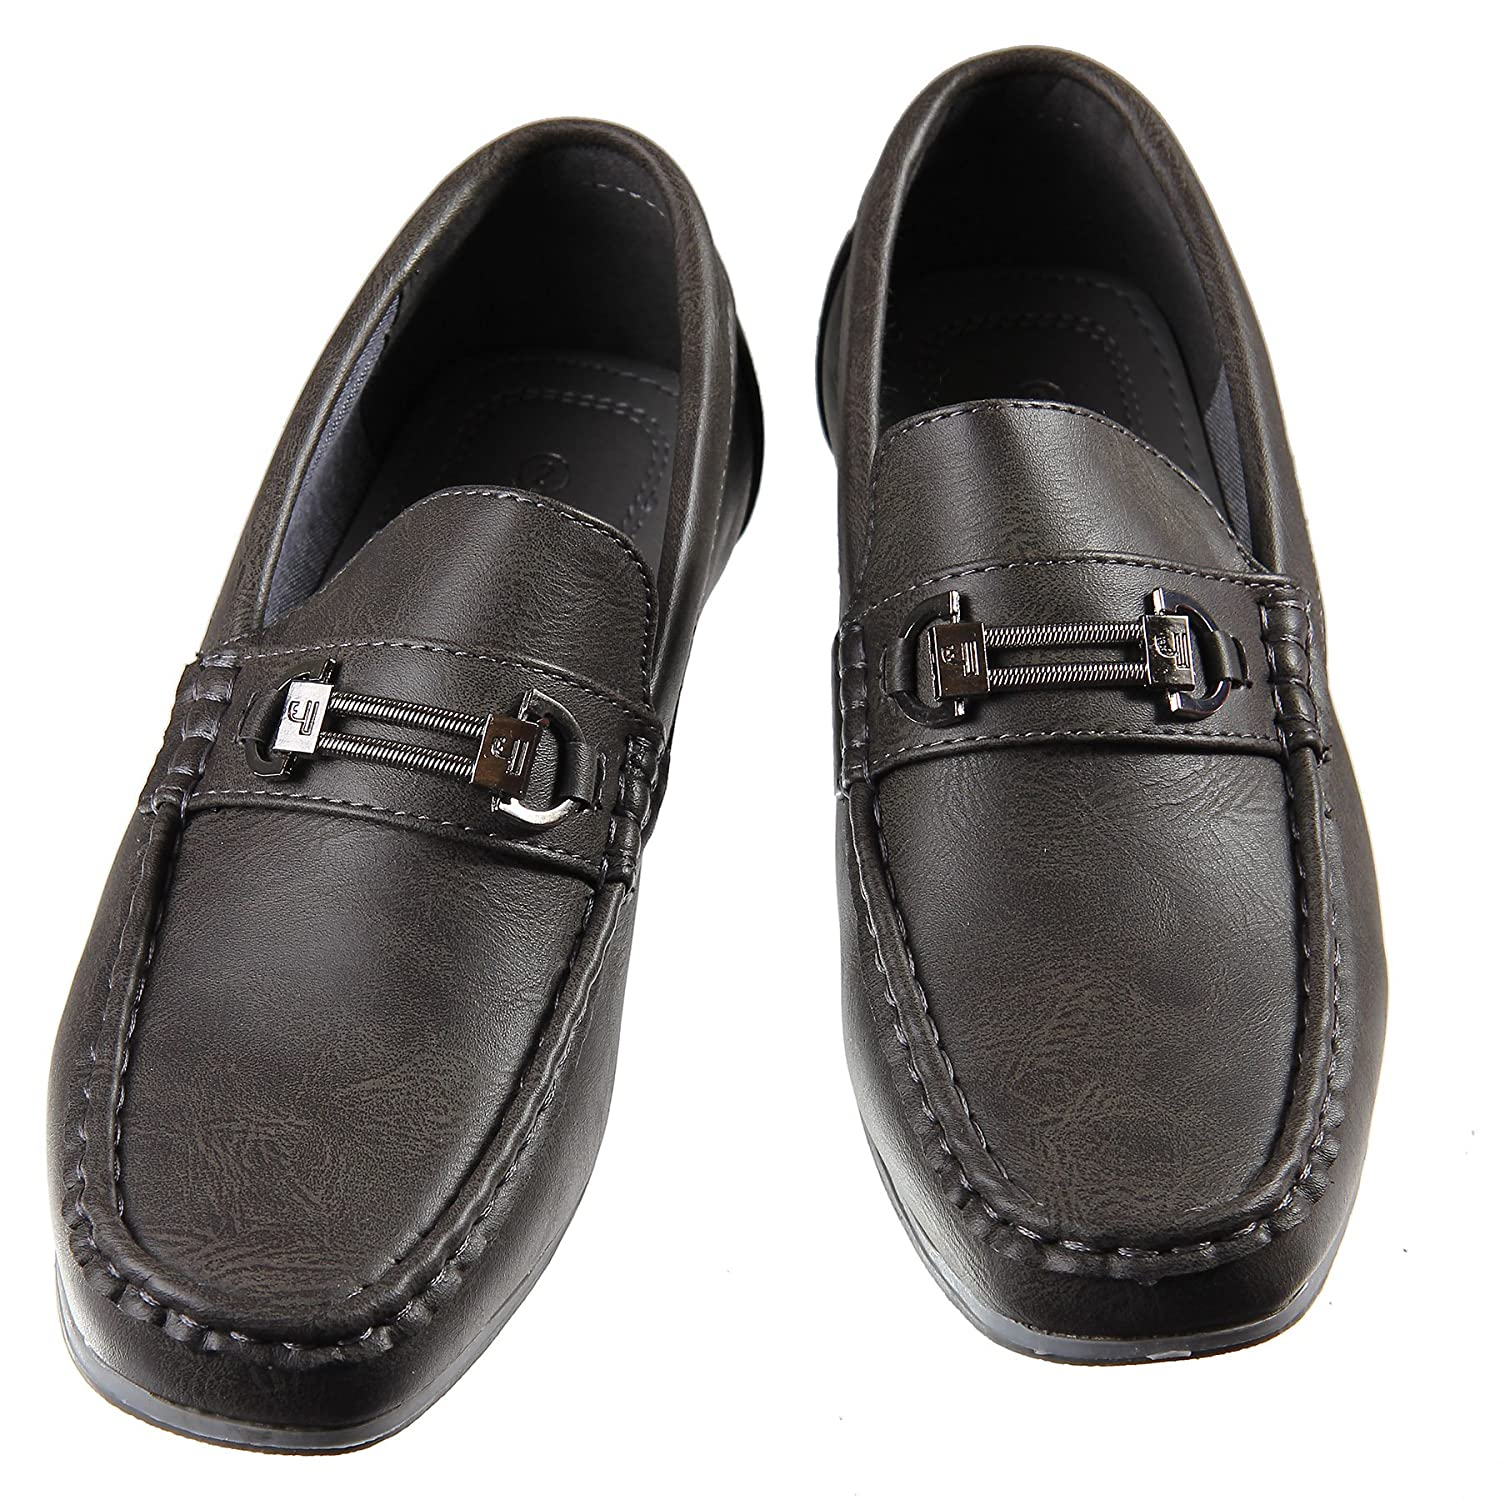 Dark Grey Loafers Slip on Dress Shoes Sized from Little Boys 10 to Big Boys 8